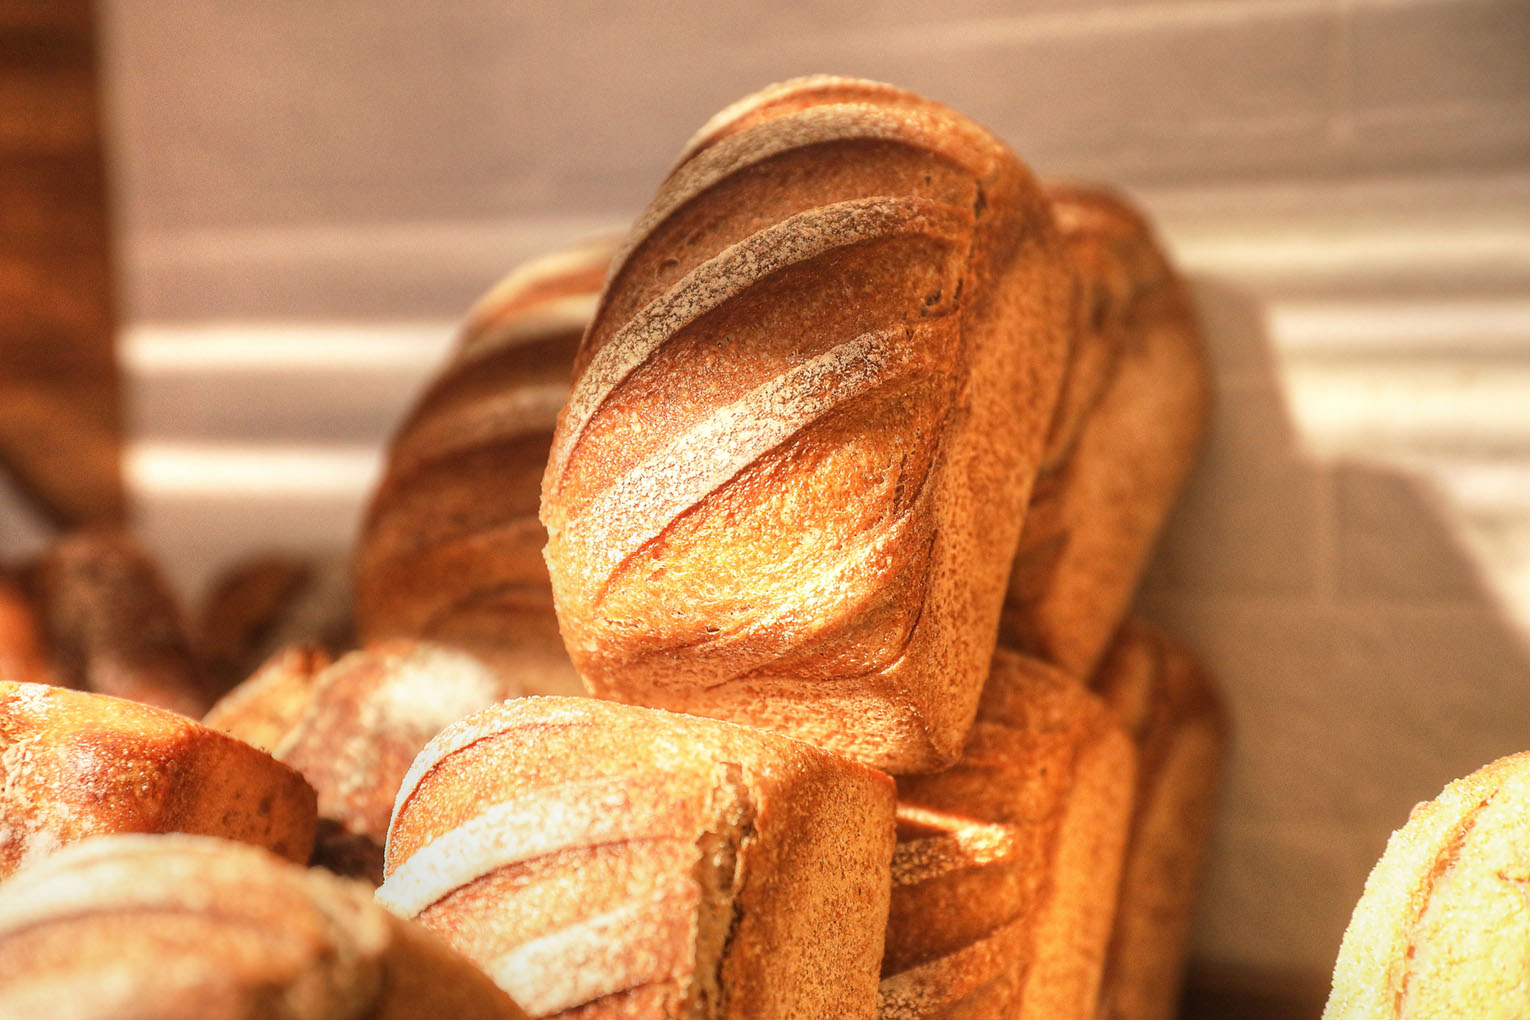 boulangerie_farineo16